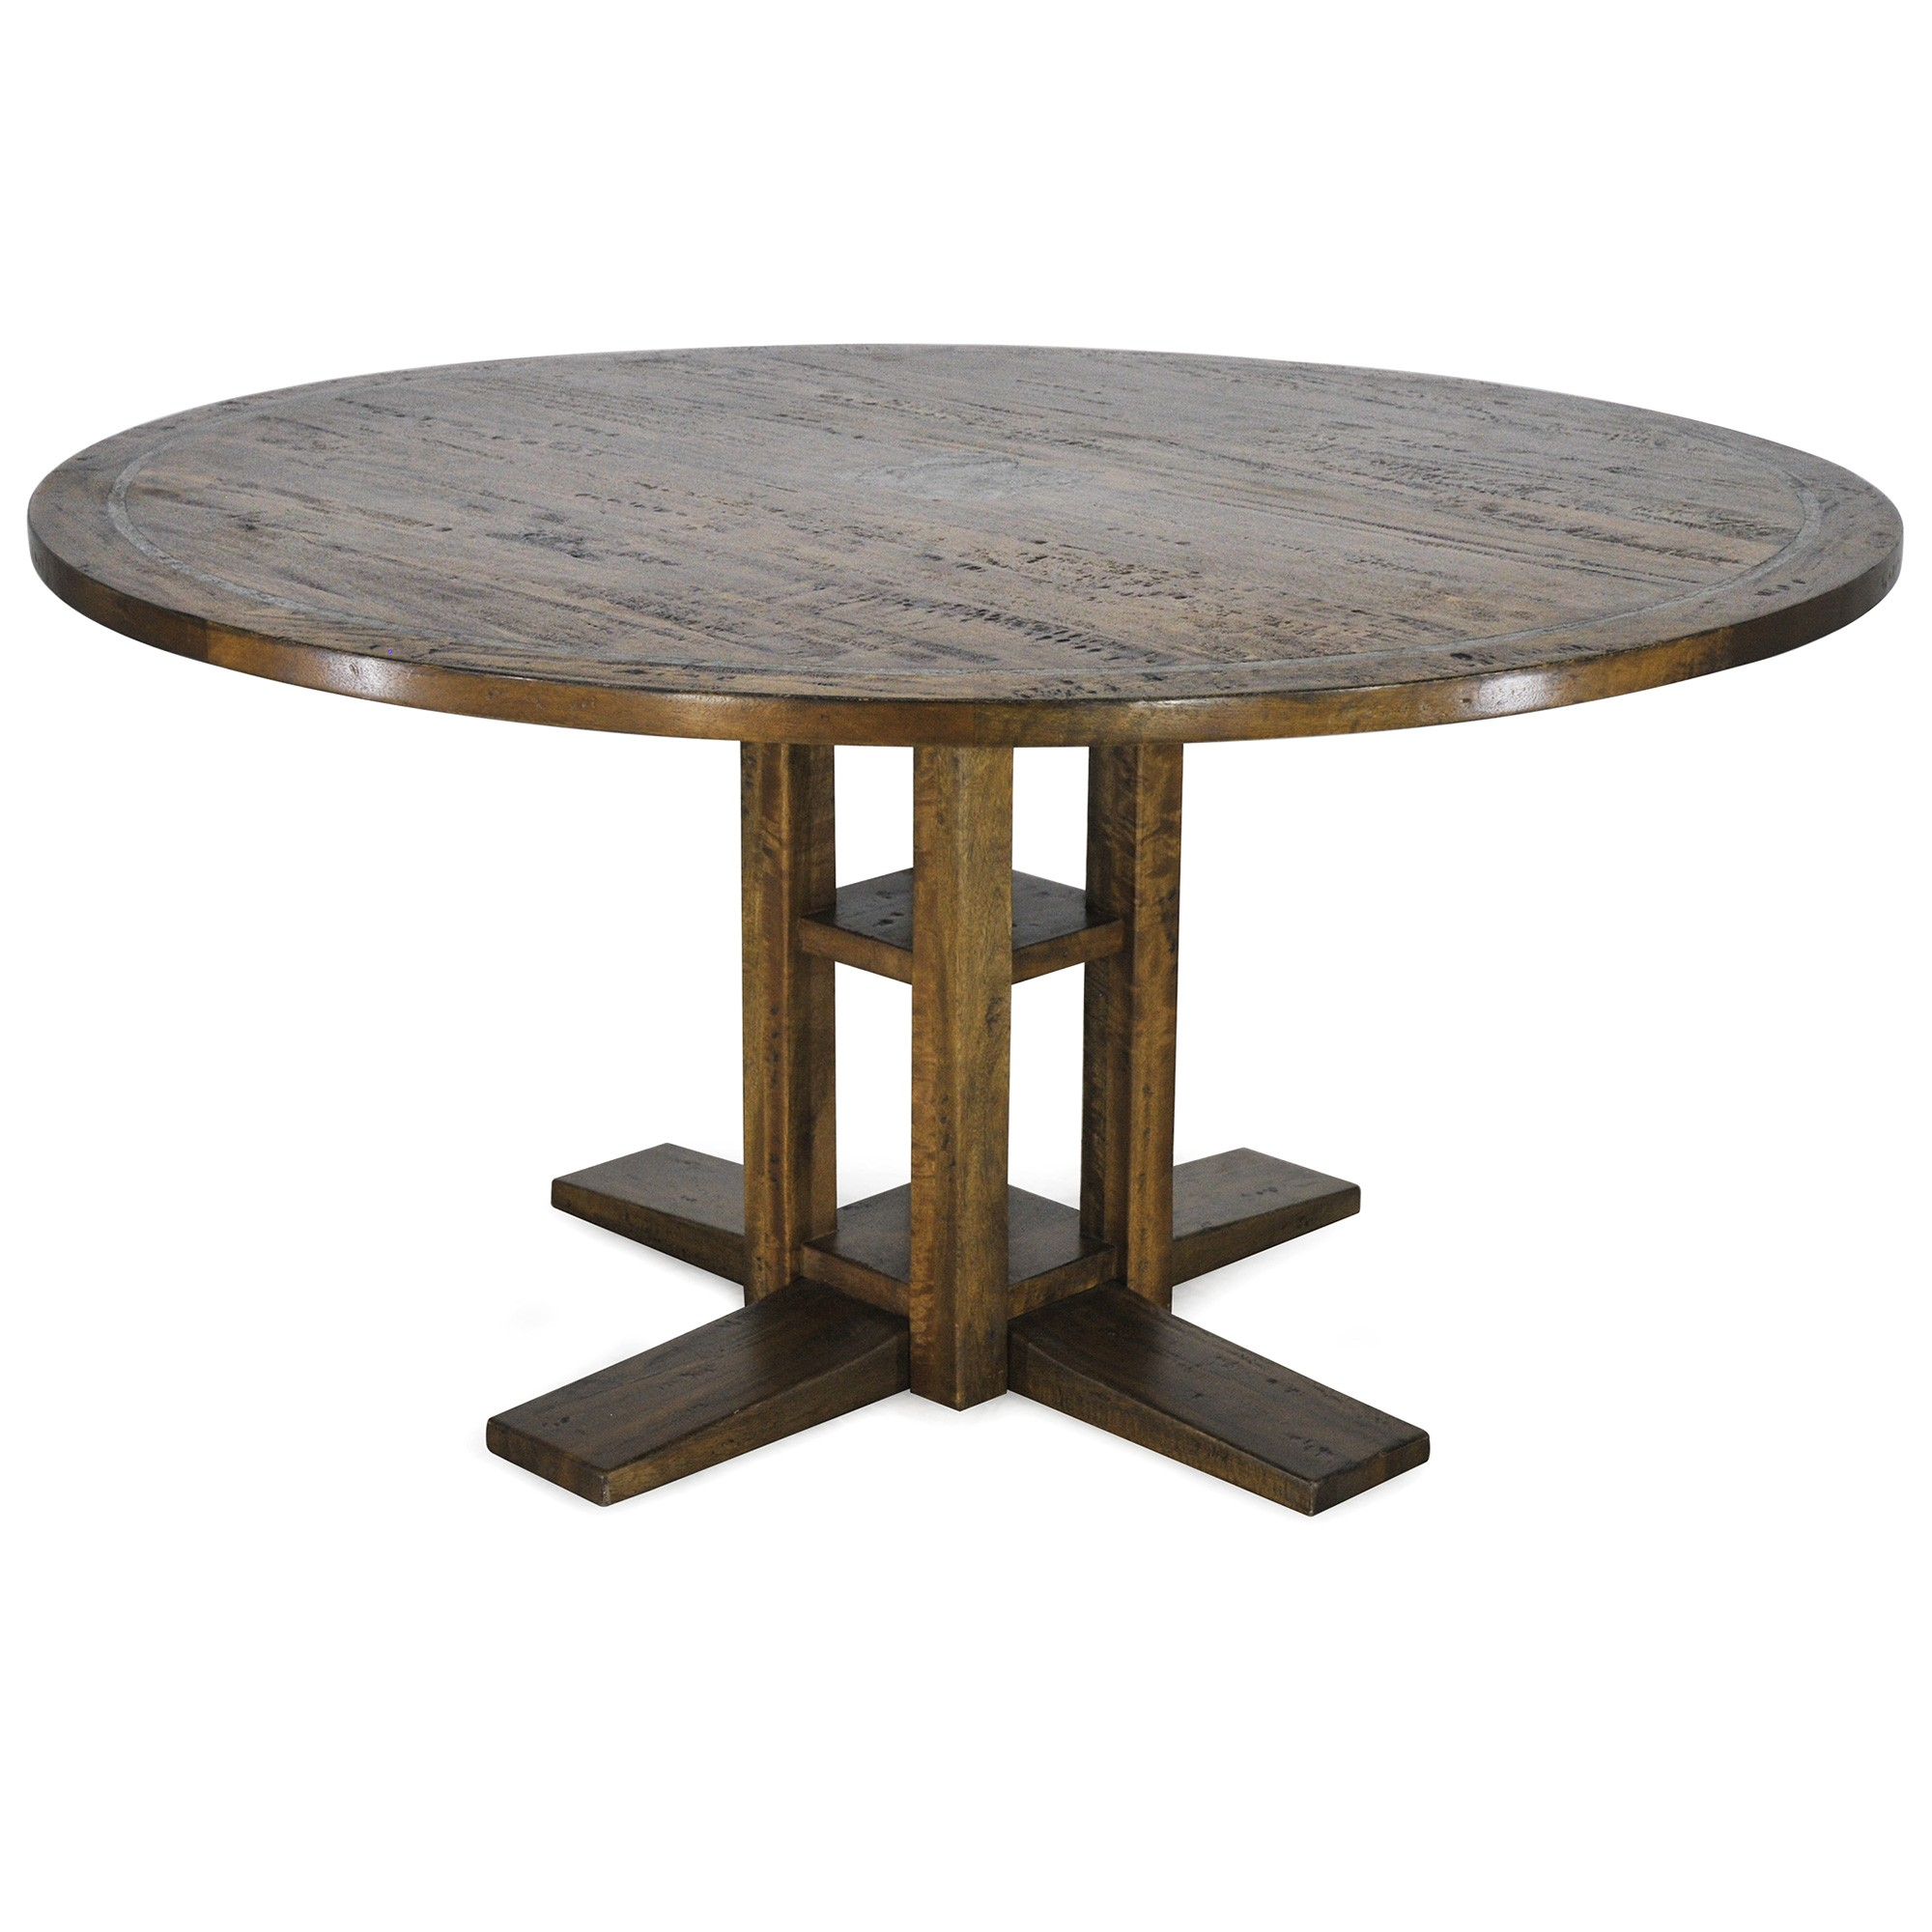 Jersey Mango Wood Round Dining Table, 152cm